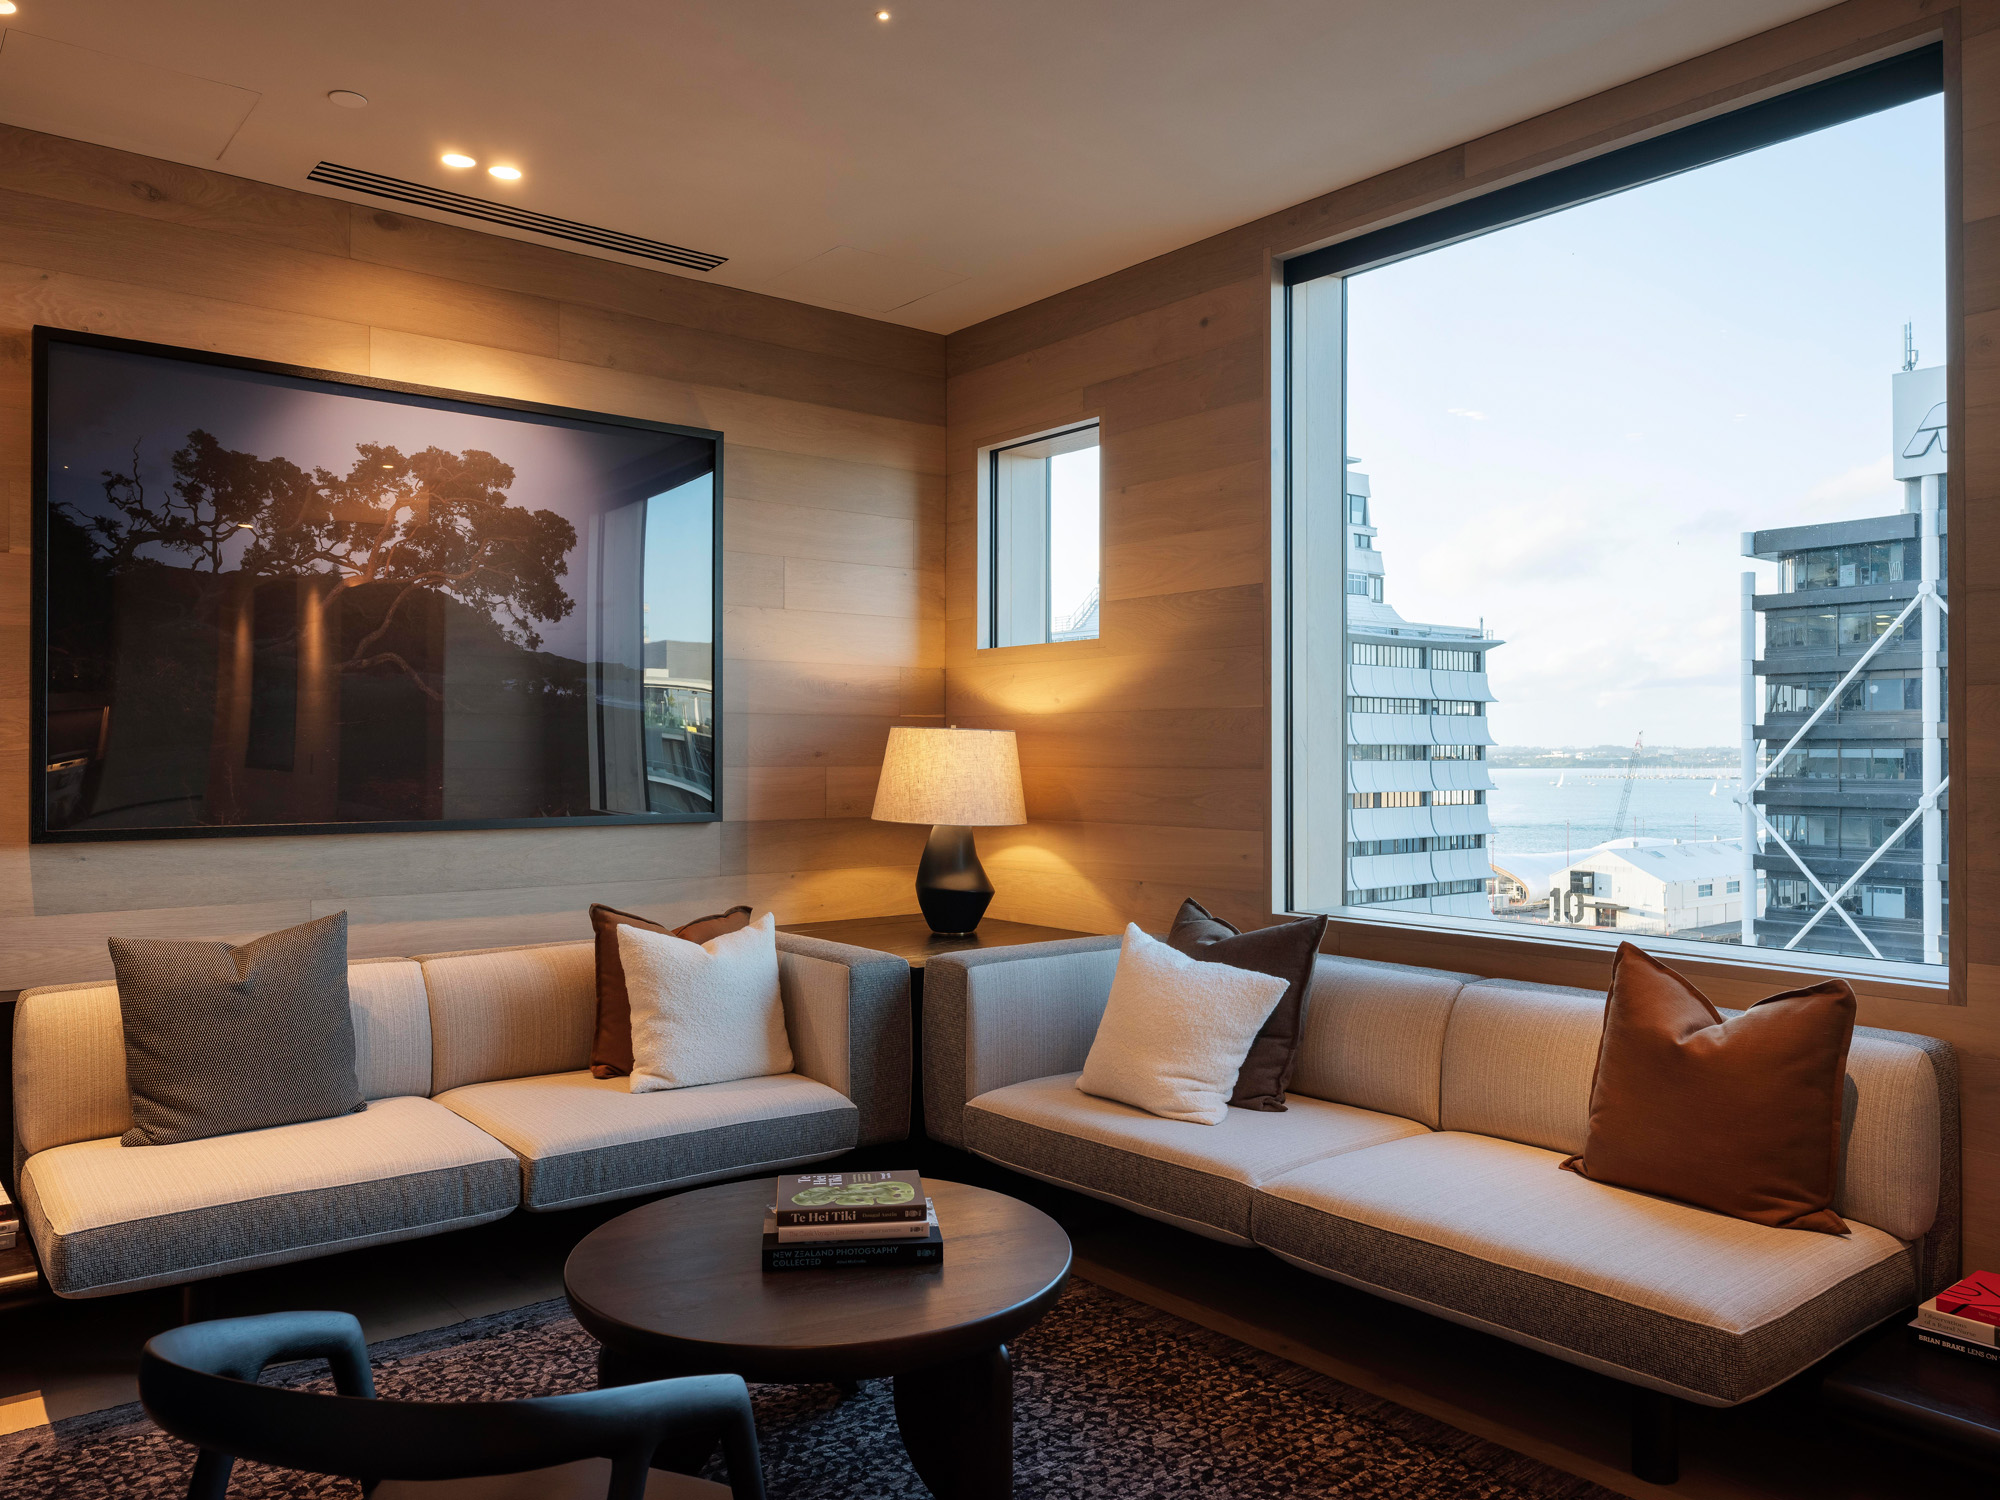 Te Puna Suite lounge city view - The Landing Suites in The Hotel Britomart